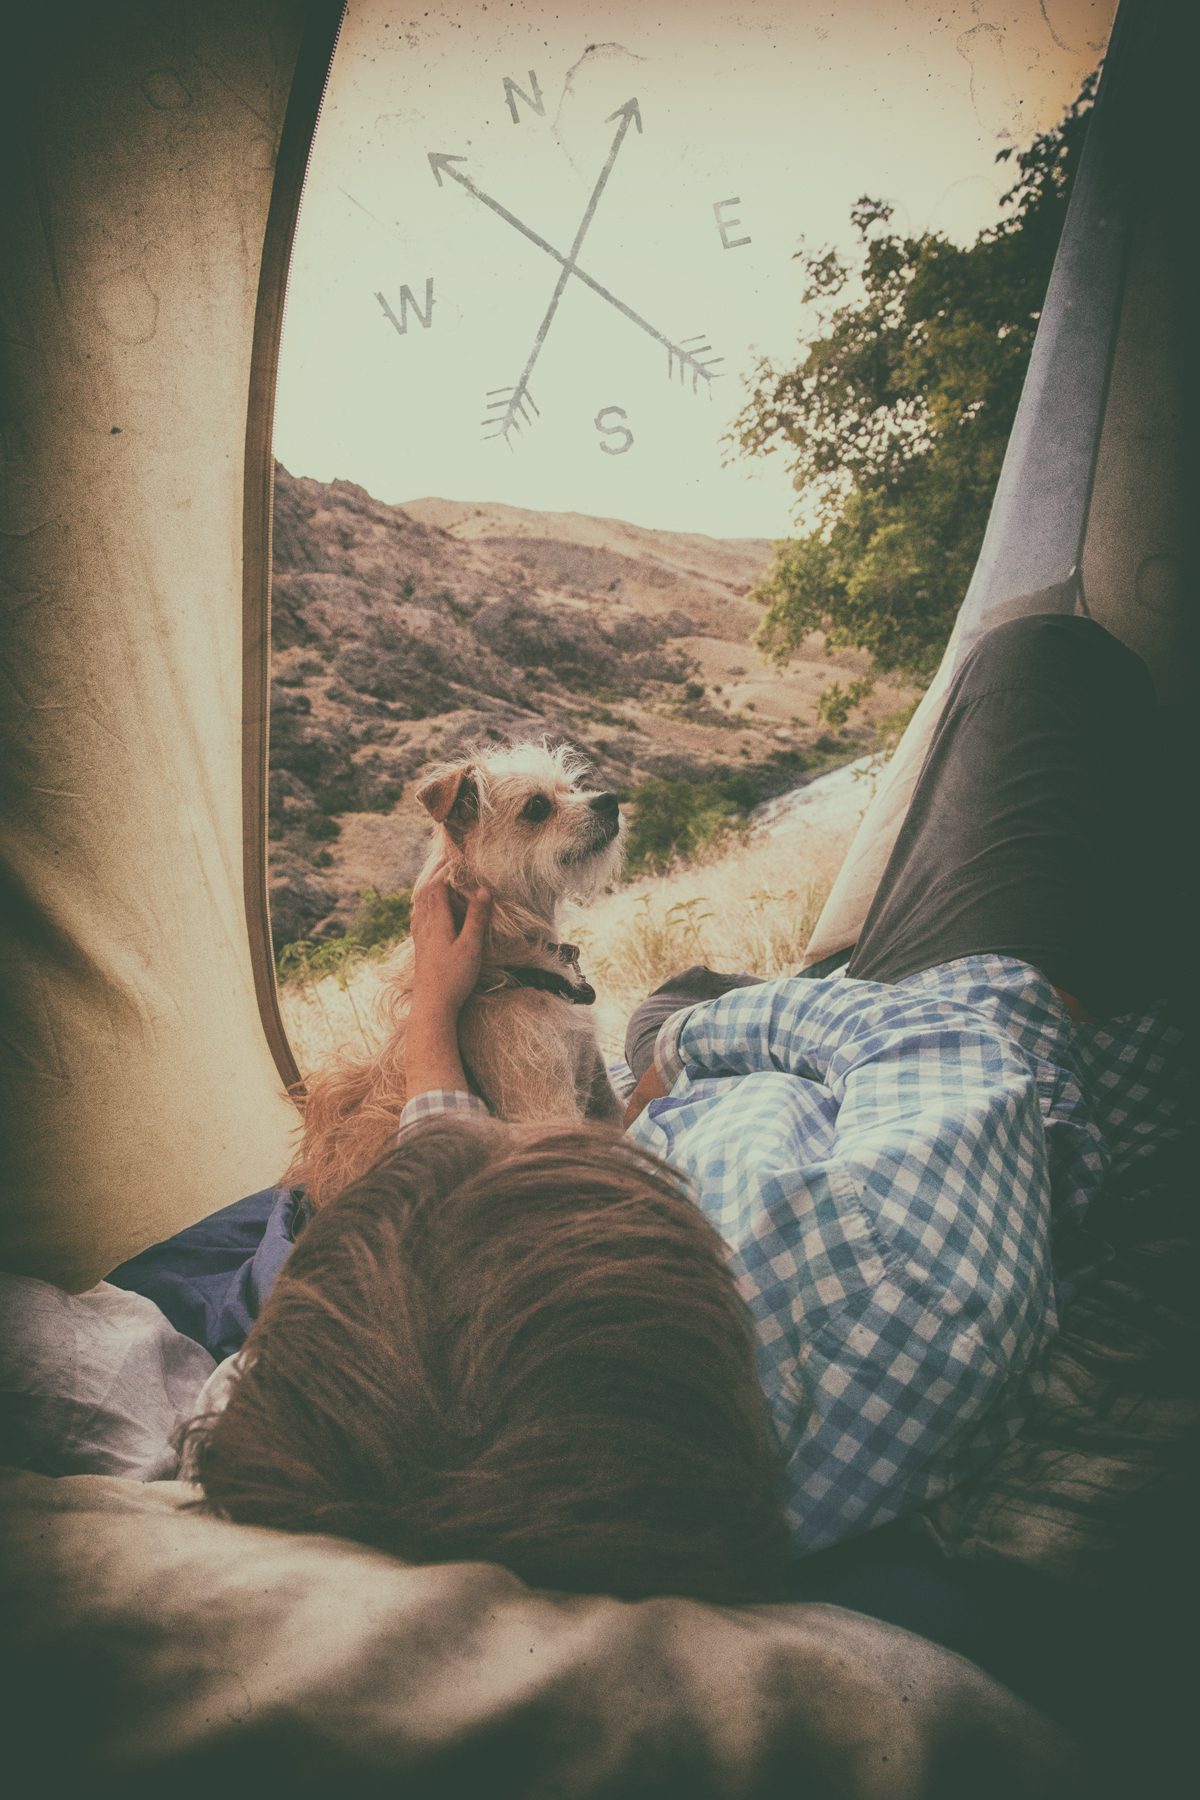 Camping along Snake River in Hells Canyon via J5MM.com